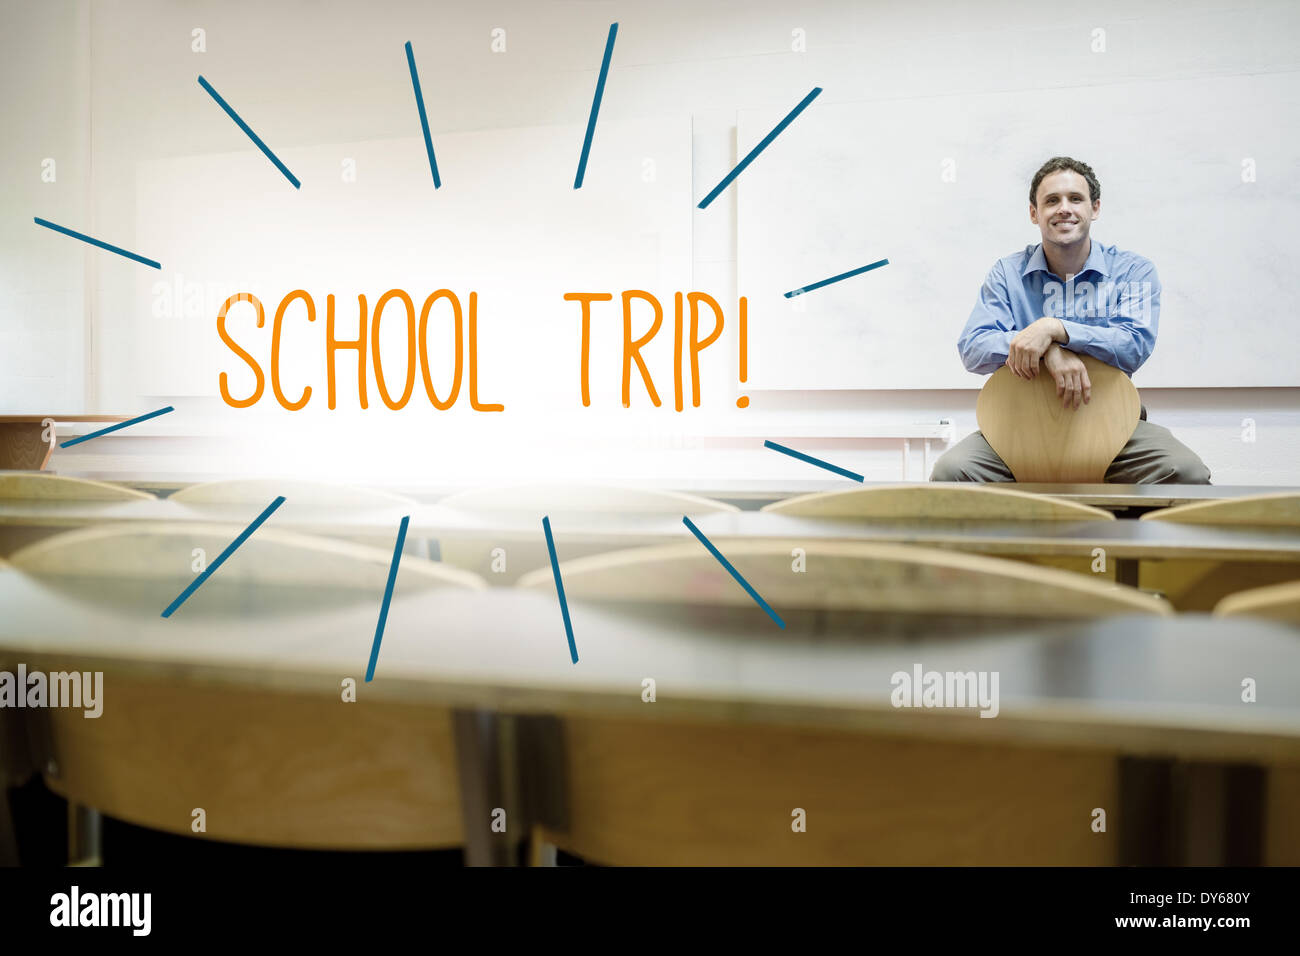 School trip! against lecturer sitting in lecture hall - Stock Image